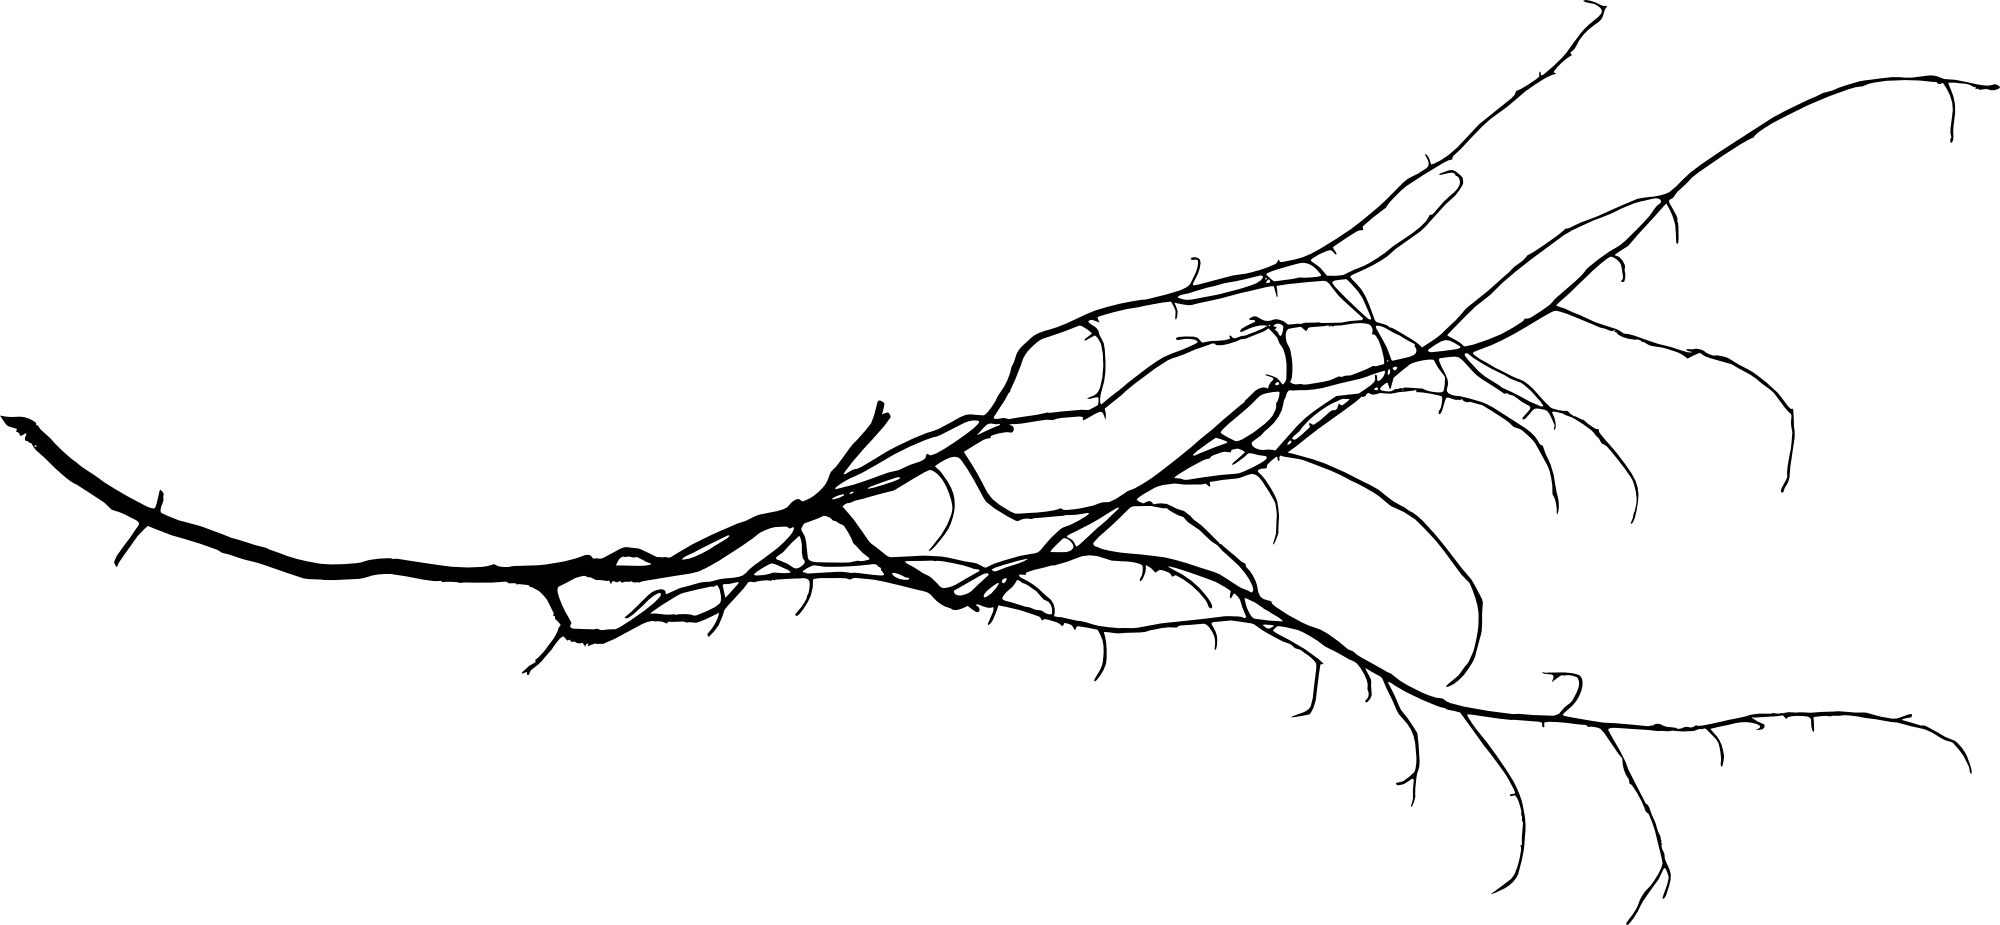 15 Tree Branch Silhouettes (PNG Transparent).